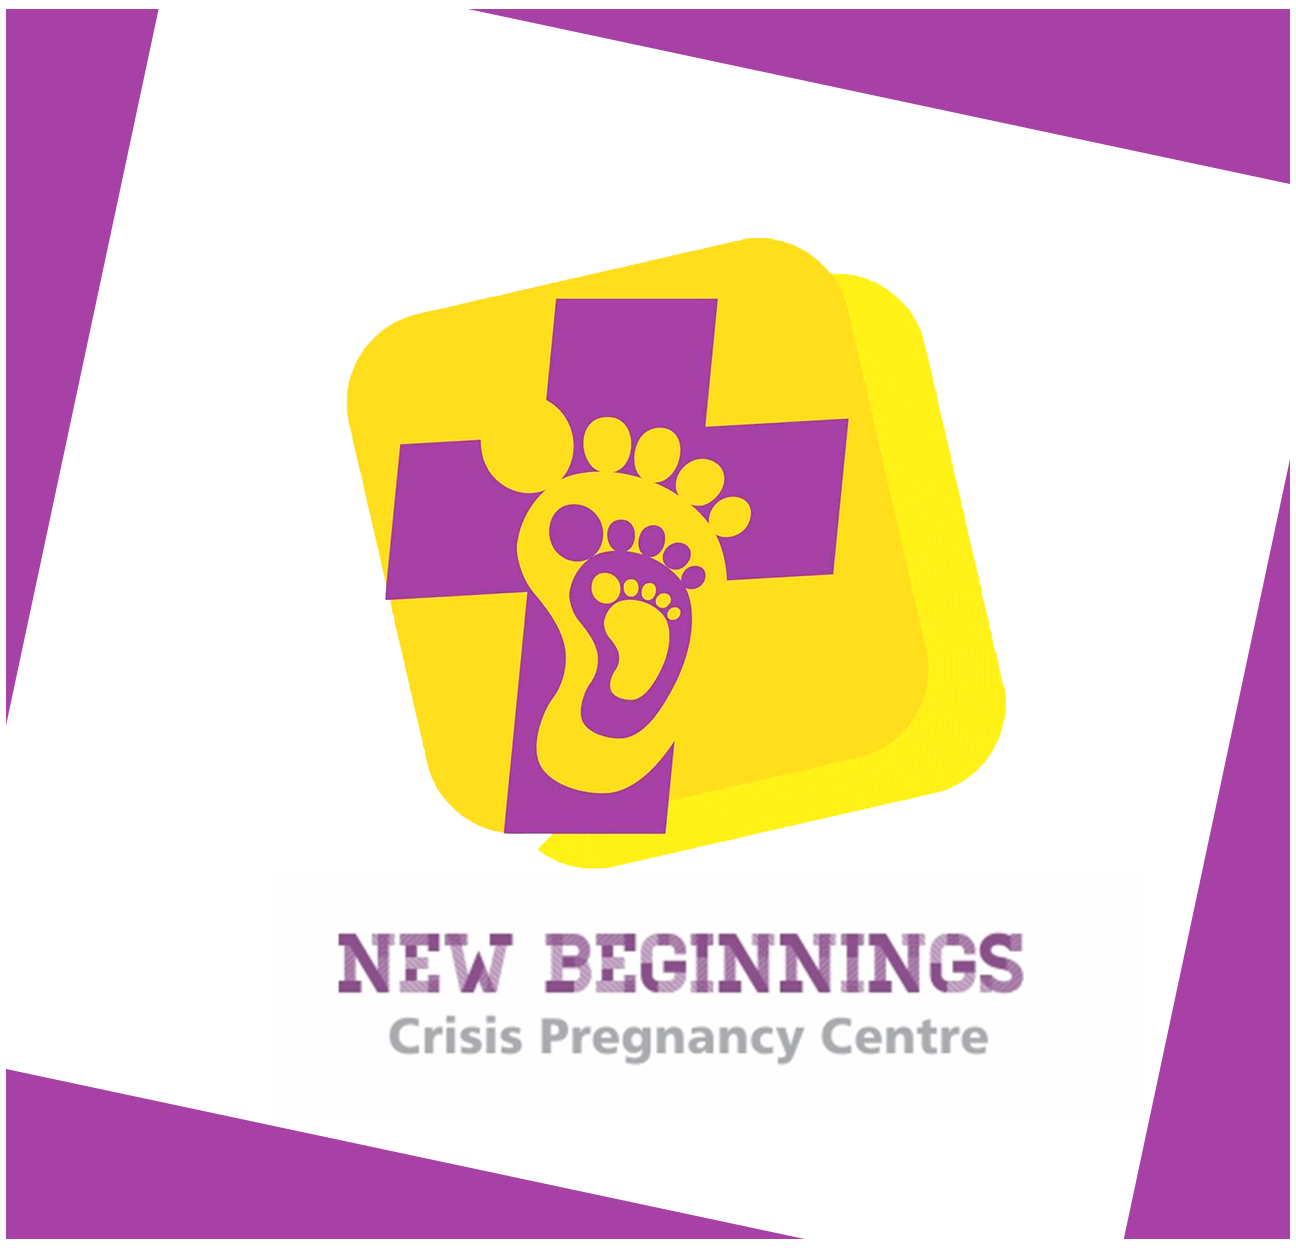 New Begining Pregnancy Crisis Center Logo